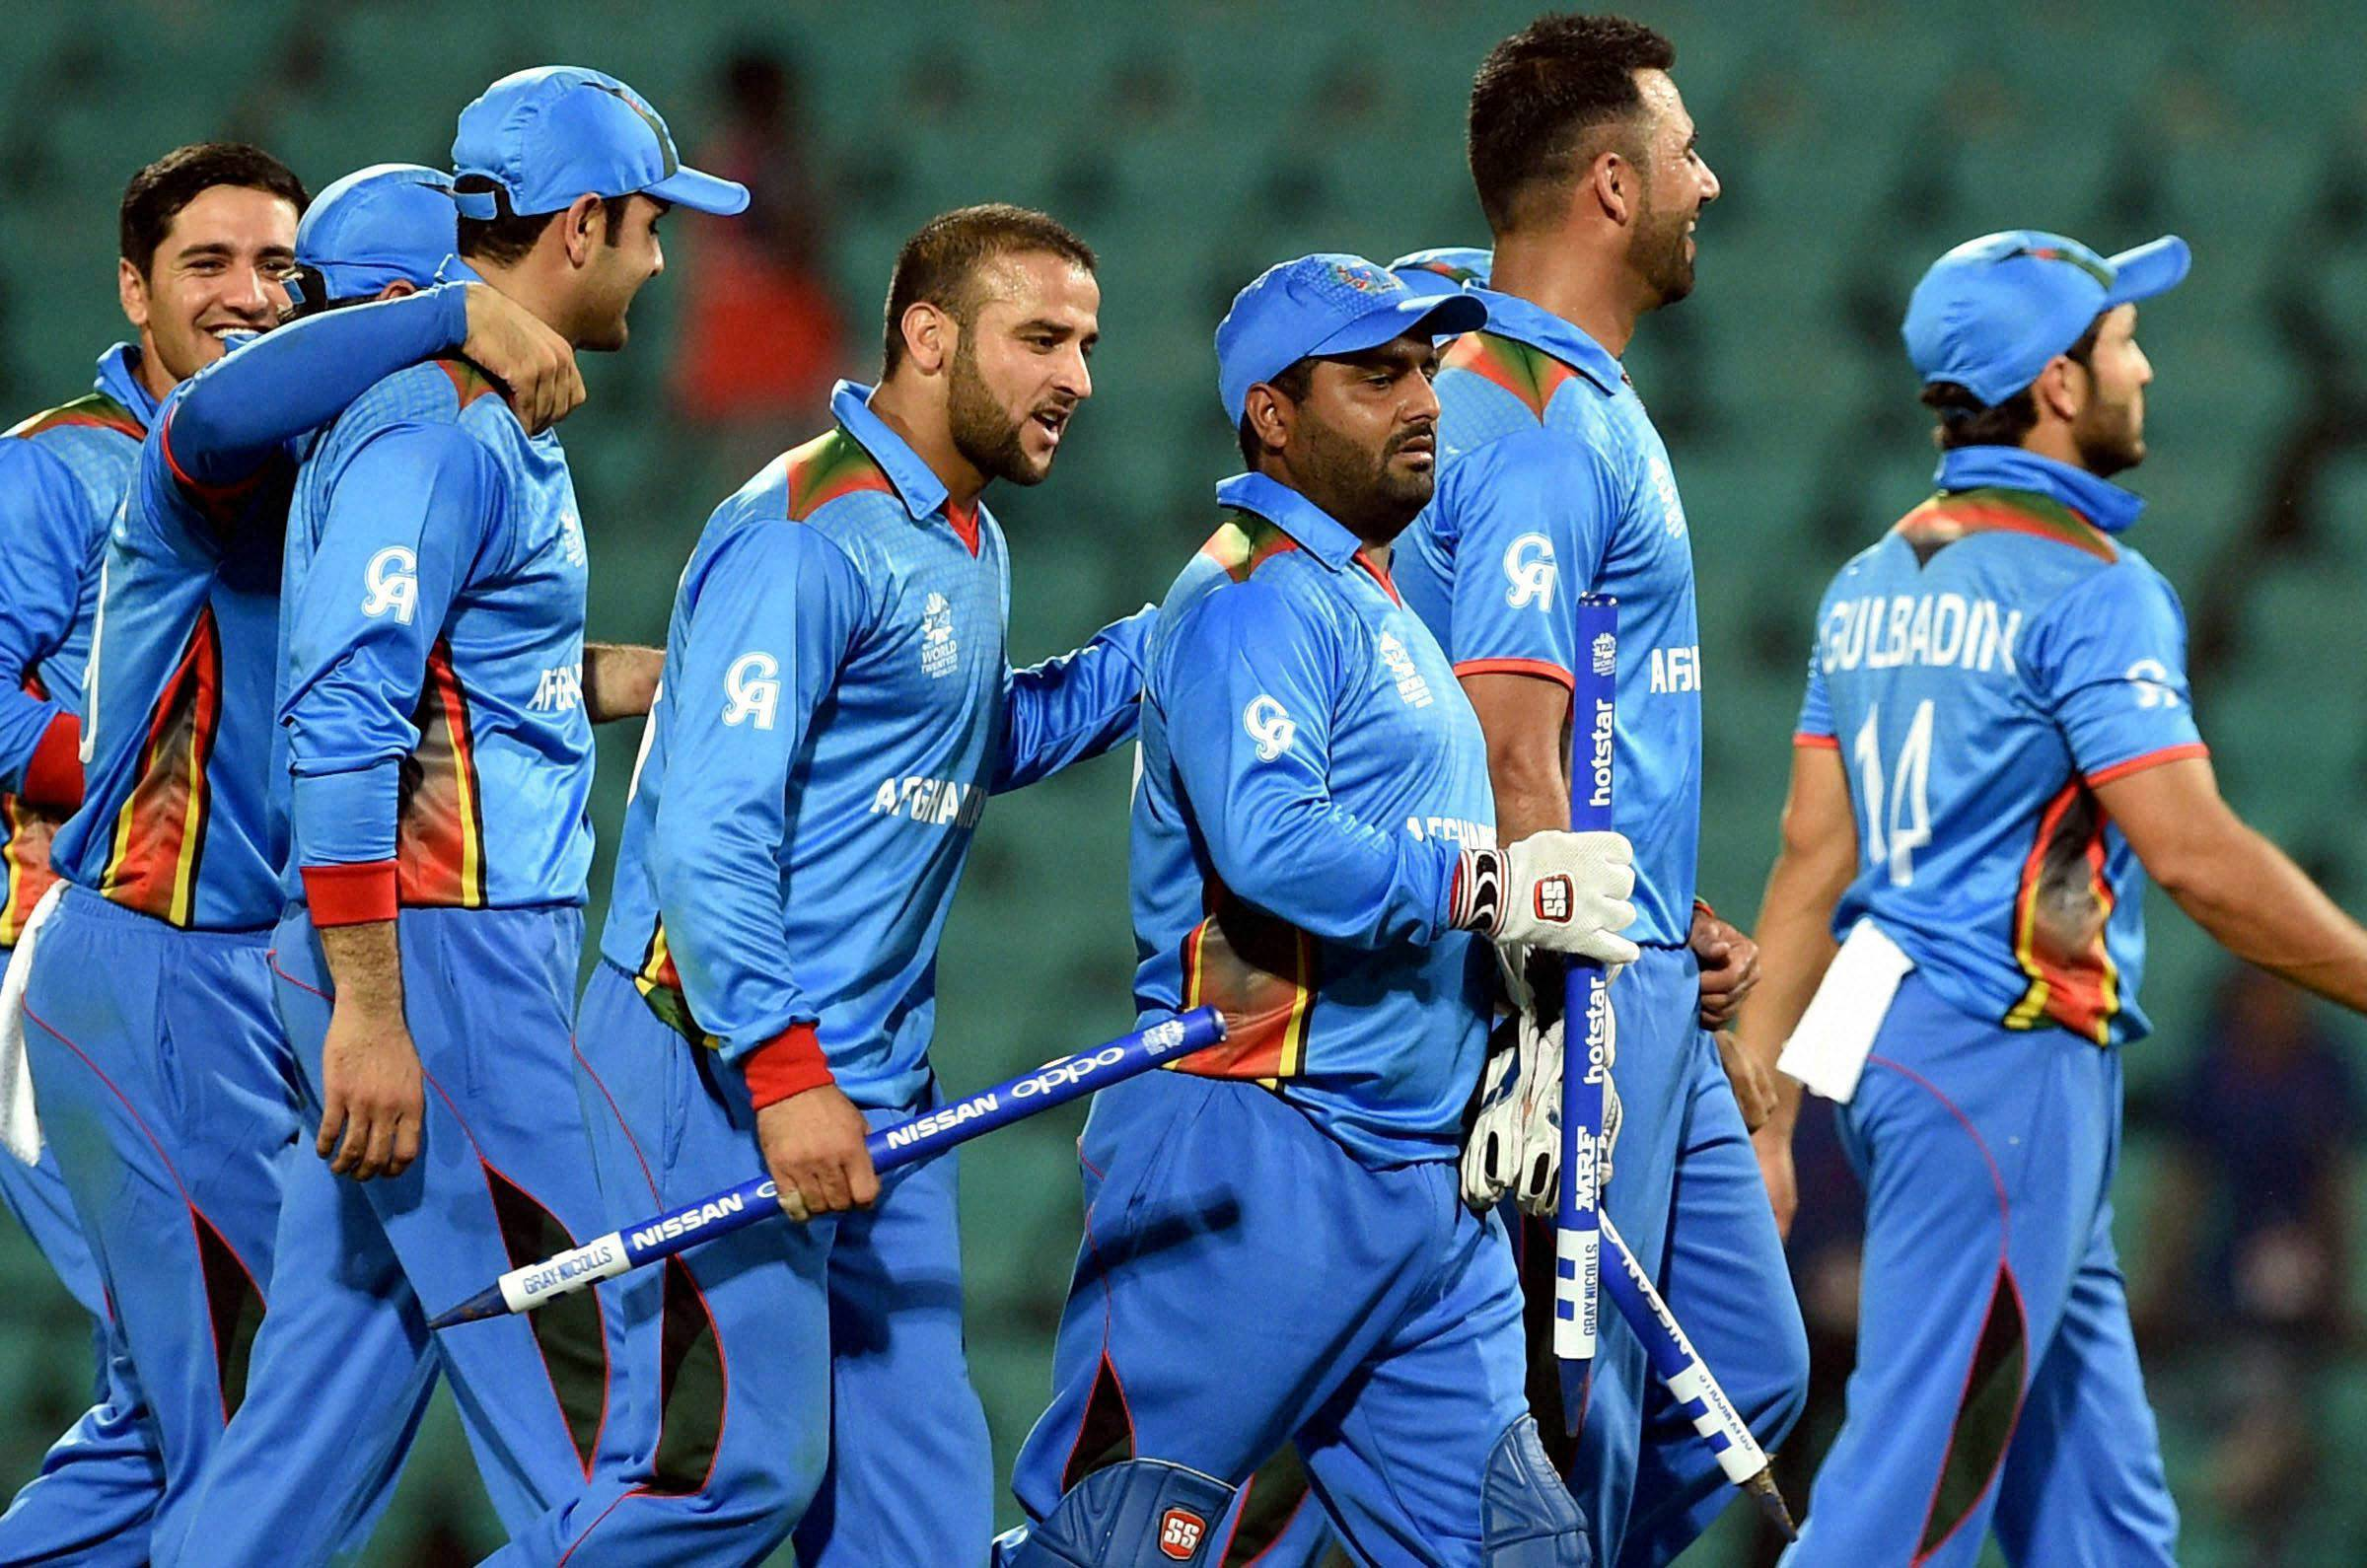 afghanistan a will replace australia a in tri series in south africa